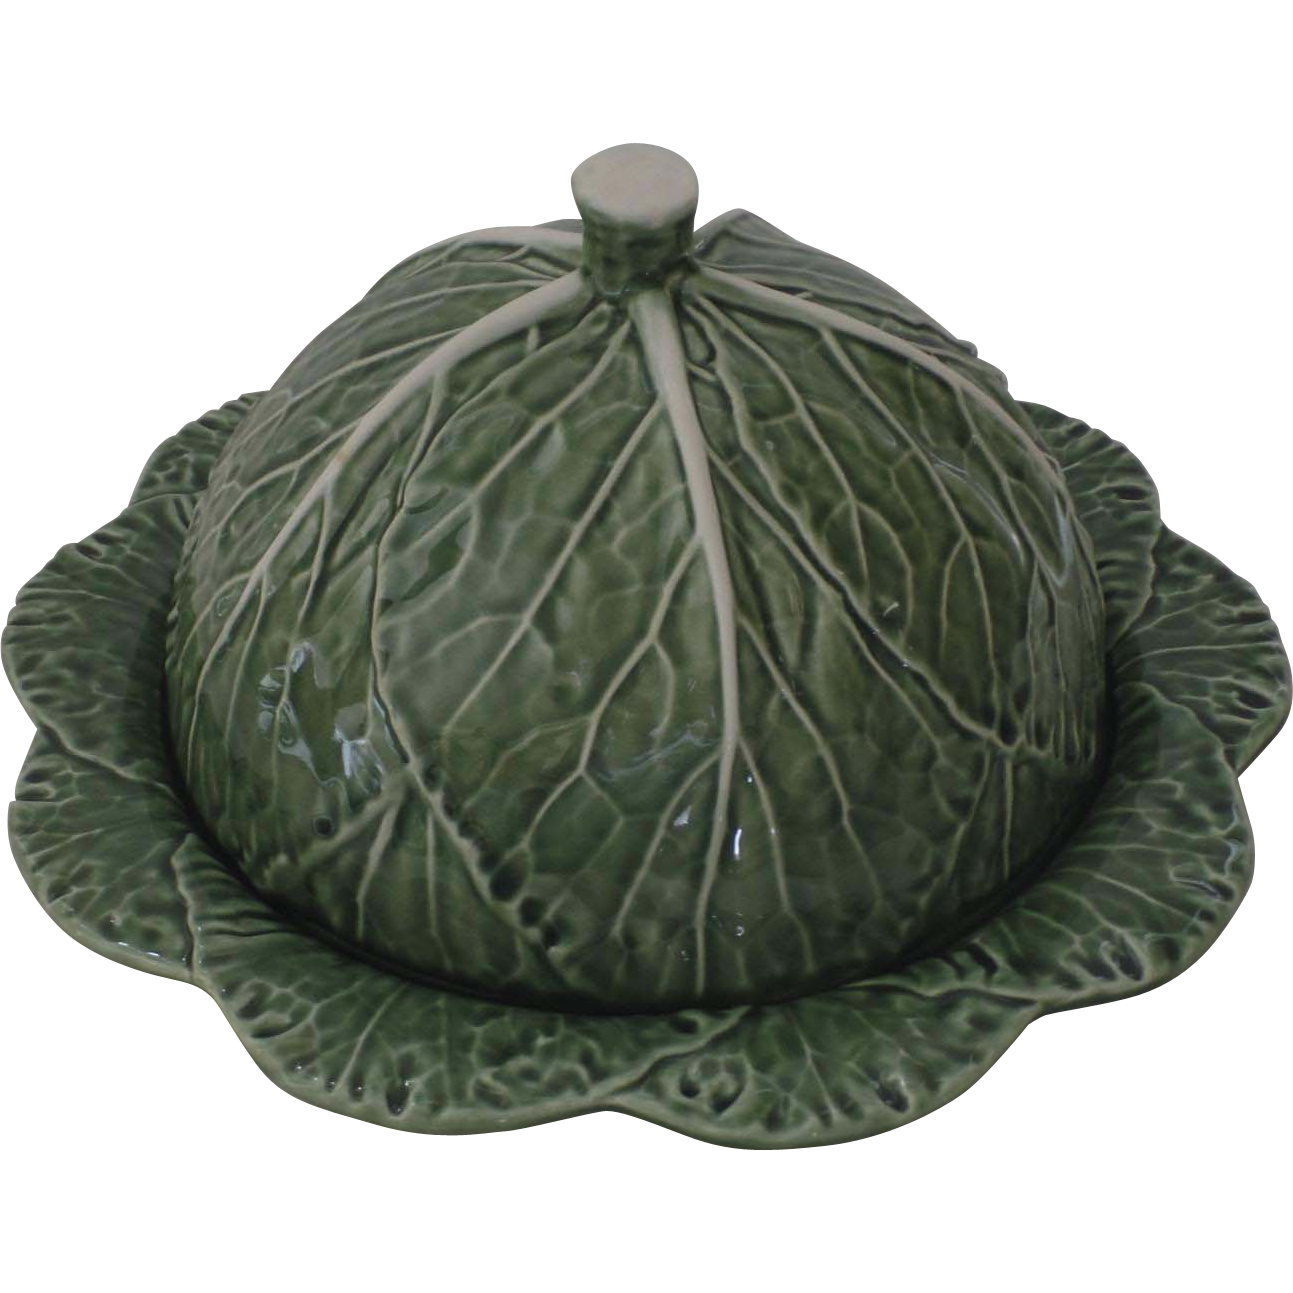 Vintage bordallo pinheiro cabbage portugal cheese dome - Bordallo pinheiro portugal ...